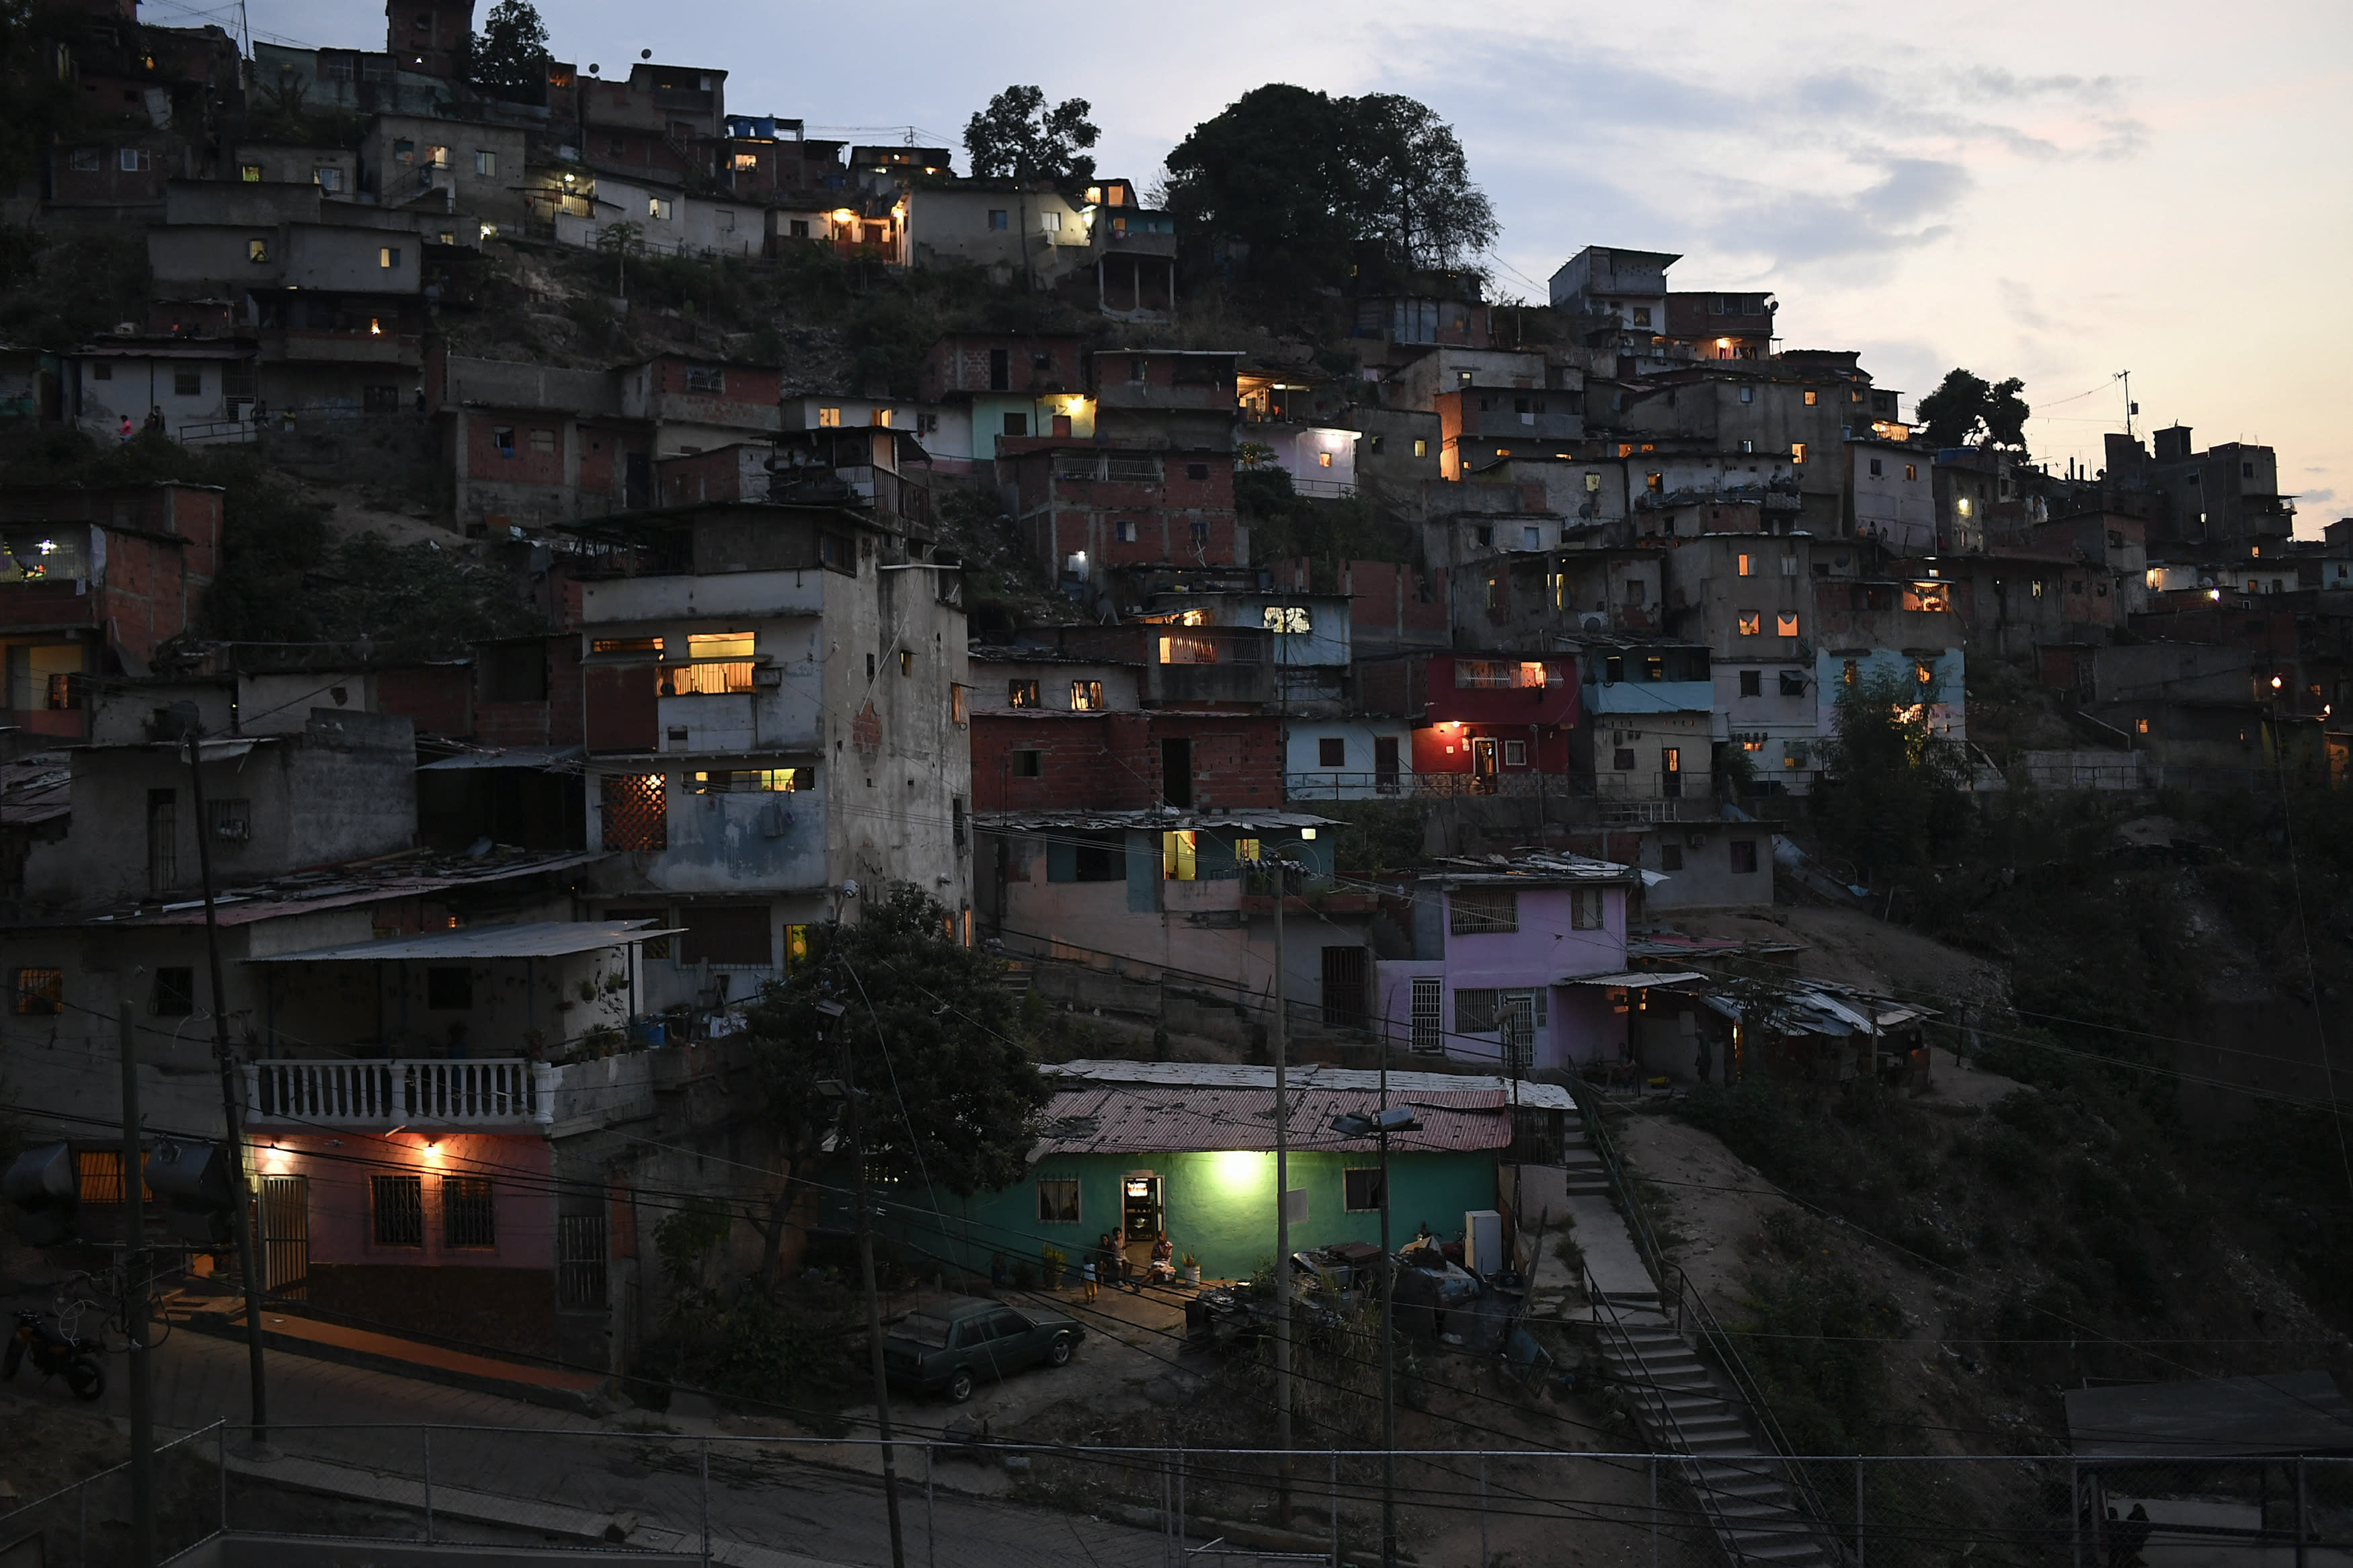 Homes cover a hill in the San Agustin neighborhood of Caracas, Venezuela, Sunday, May 17, 2020. President Nicolas Maduro is relaxing quarantine measures over the weekend by allowing children and older adults out of their homes for a few hours each day. (AP Photo/Matias Delacroix)